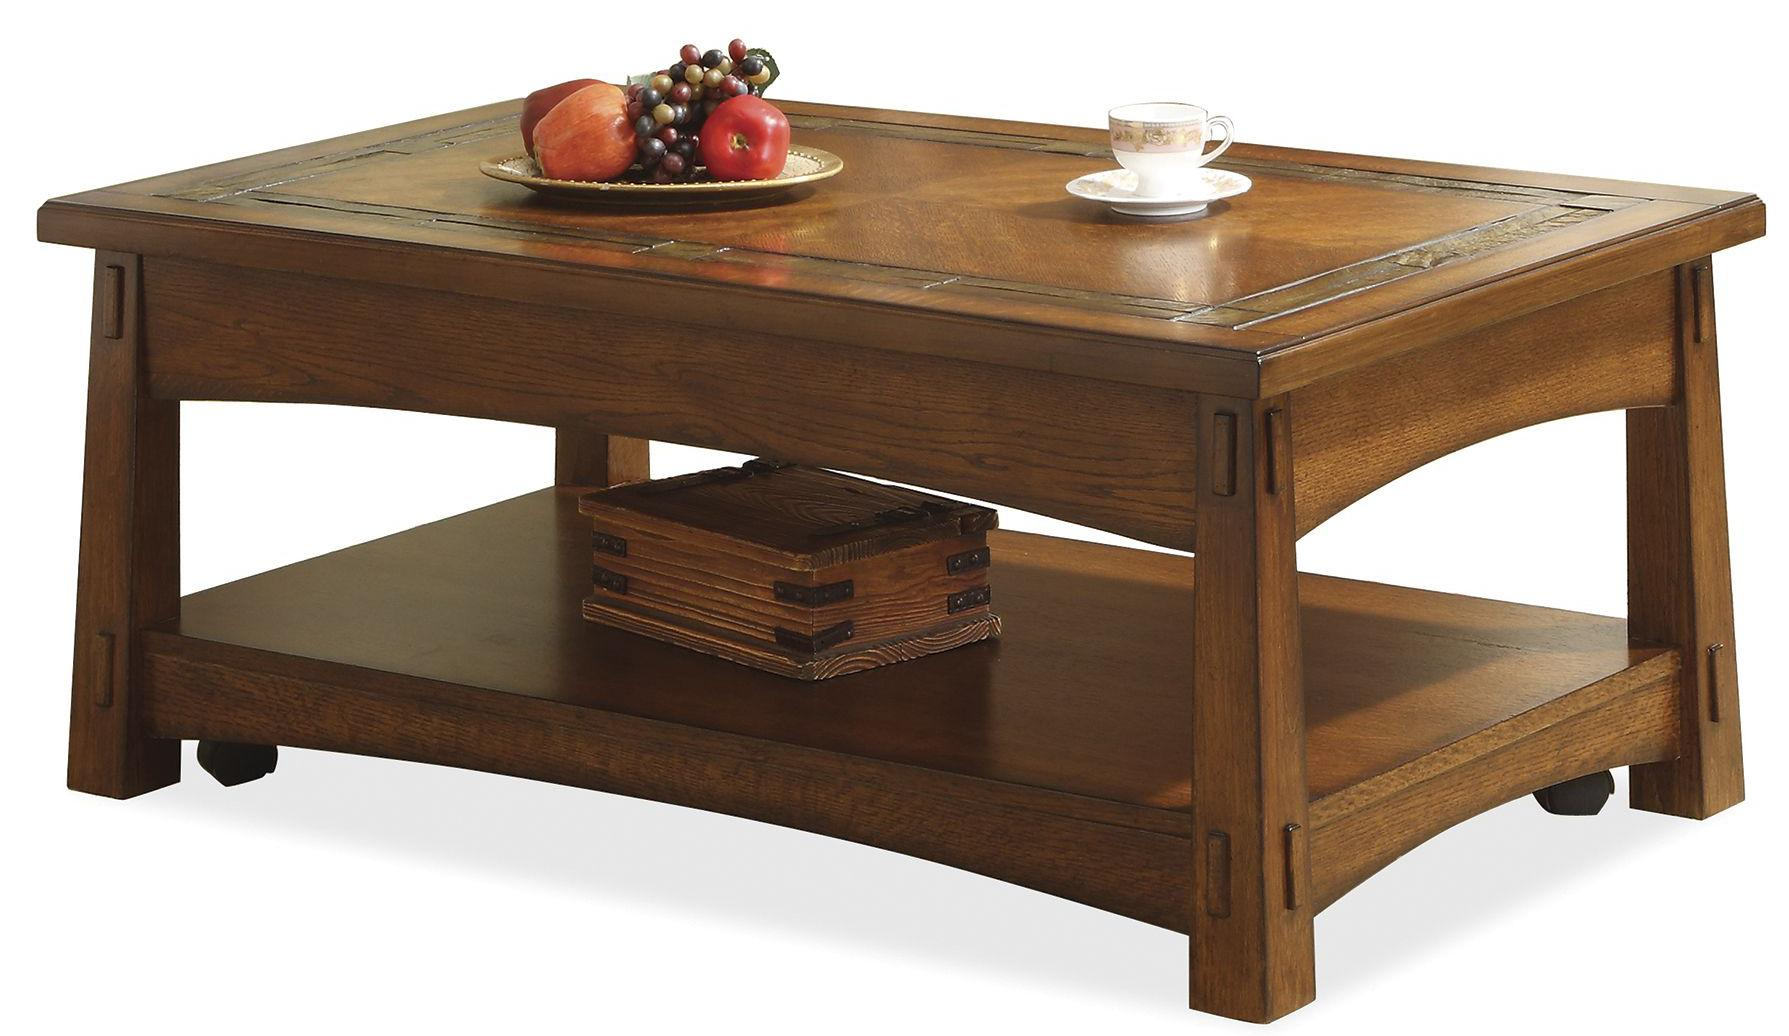 Merveilleux Riverside Furniture Craftsman Home Lift Top Coffee Table   Item Number: 2903